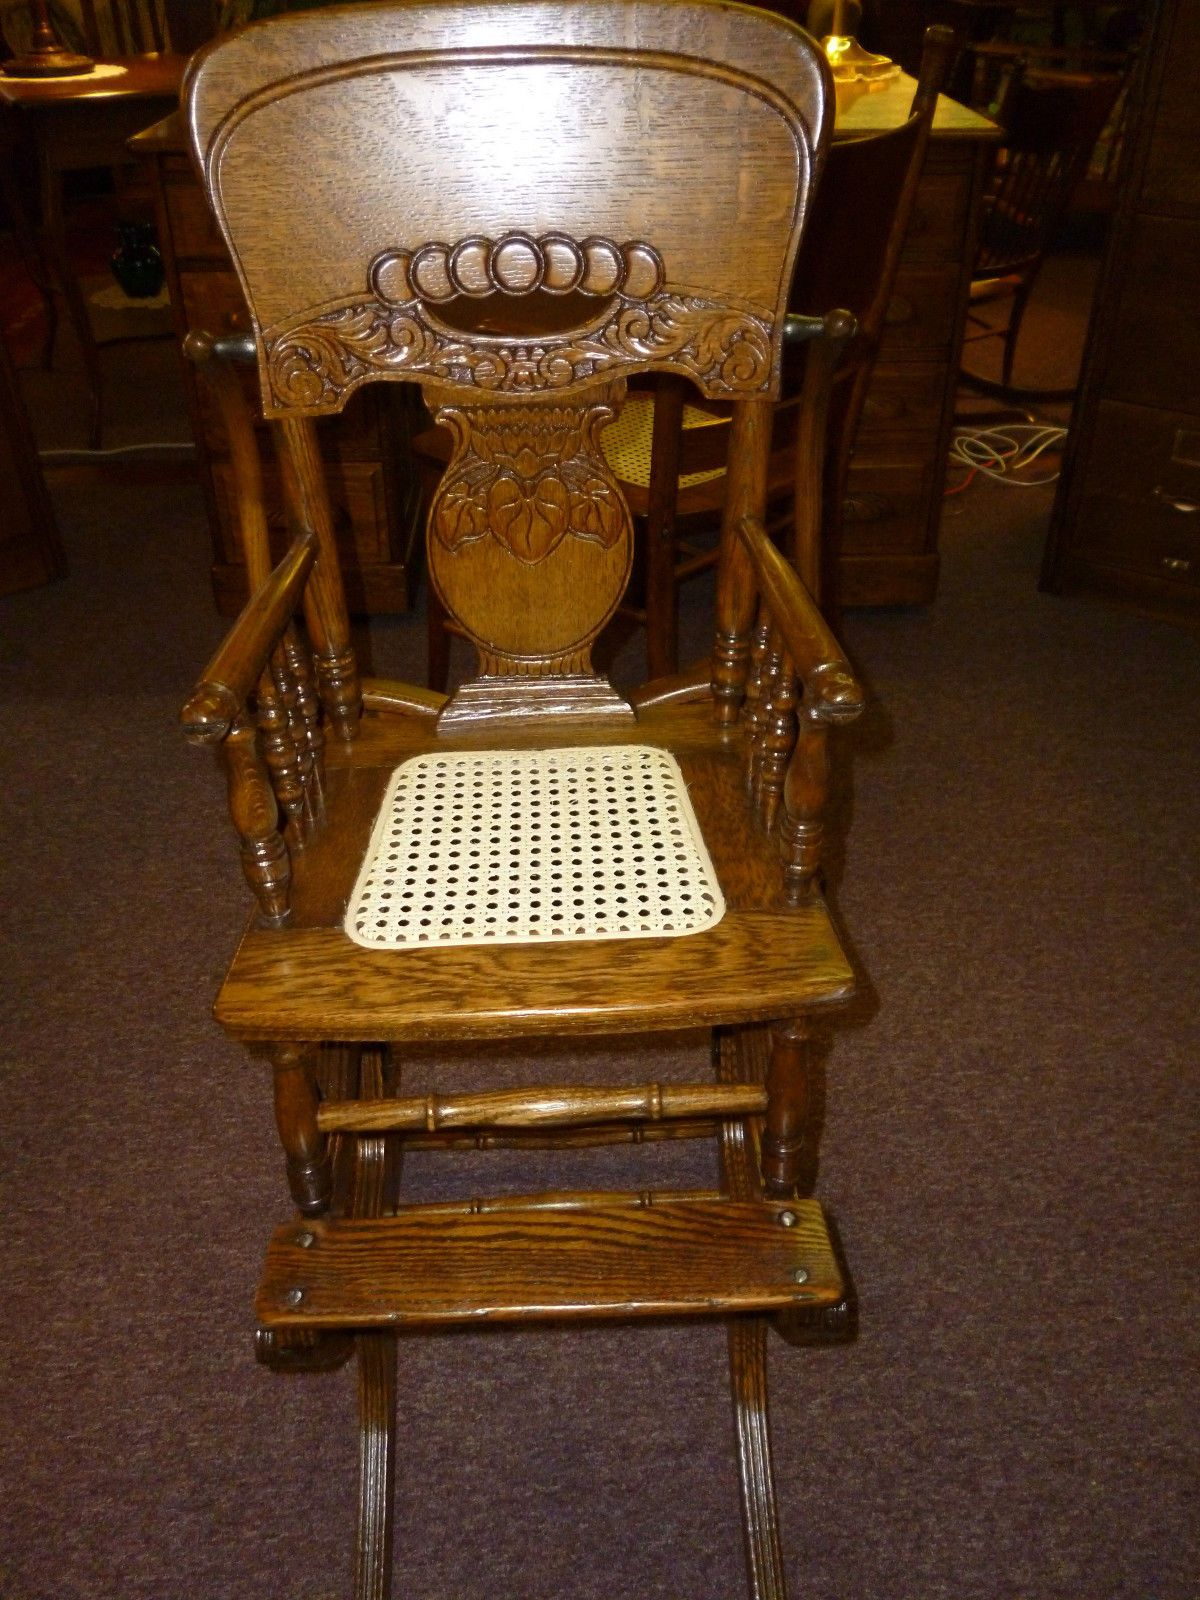 American Silver Original Antique Chairs | eBay - Antique Vintage Oak High Chair / Rocker Press Back Cane Seat Childs